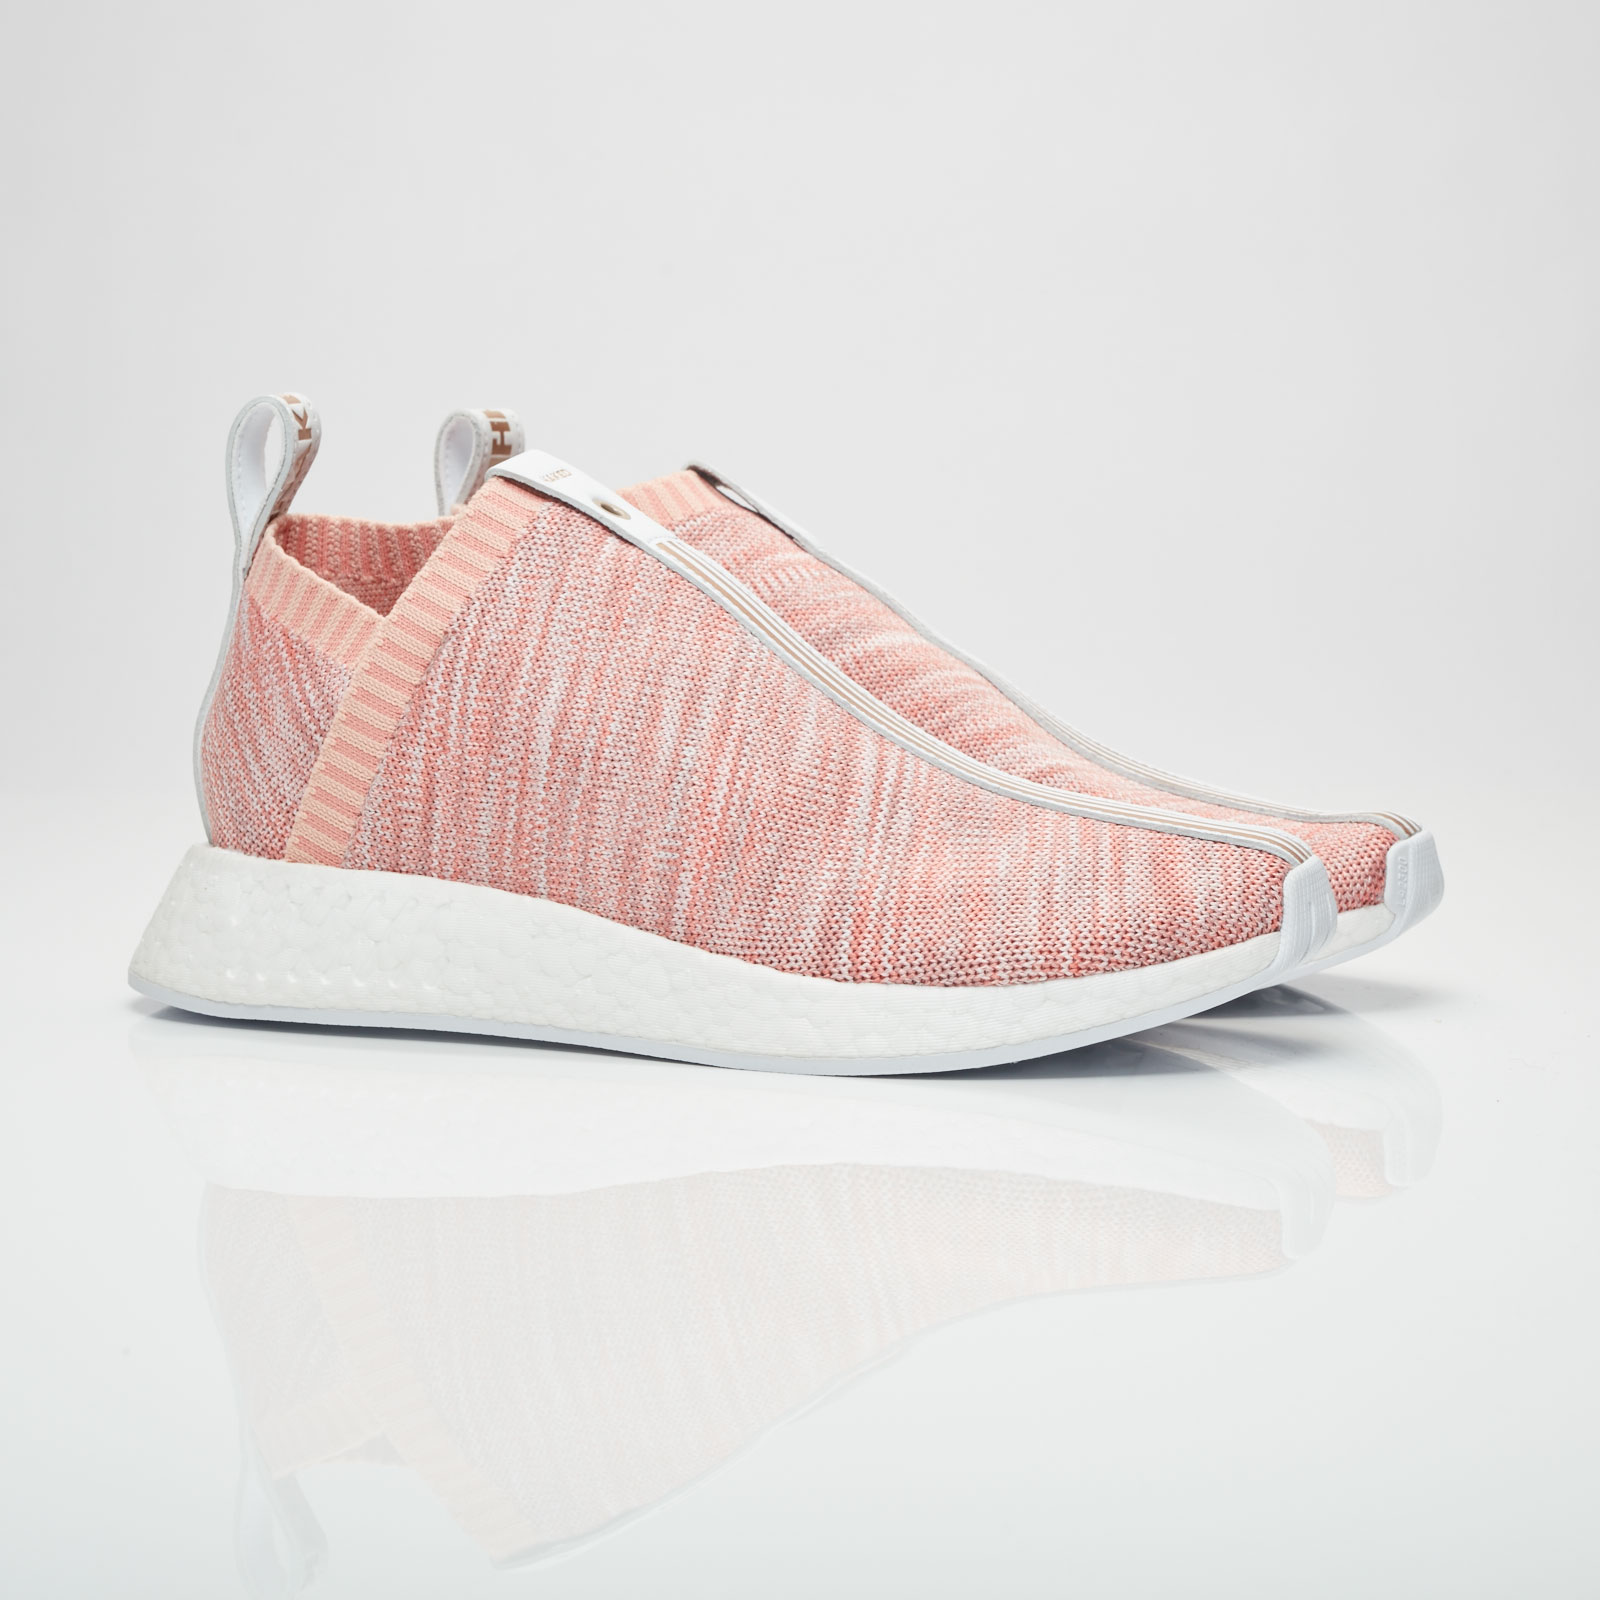 03cd290f1daf2 adidas NMD CS2 PK Naked   Kith - By2596 - Sneakersnstuff